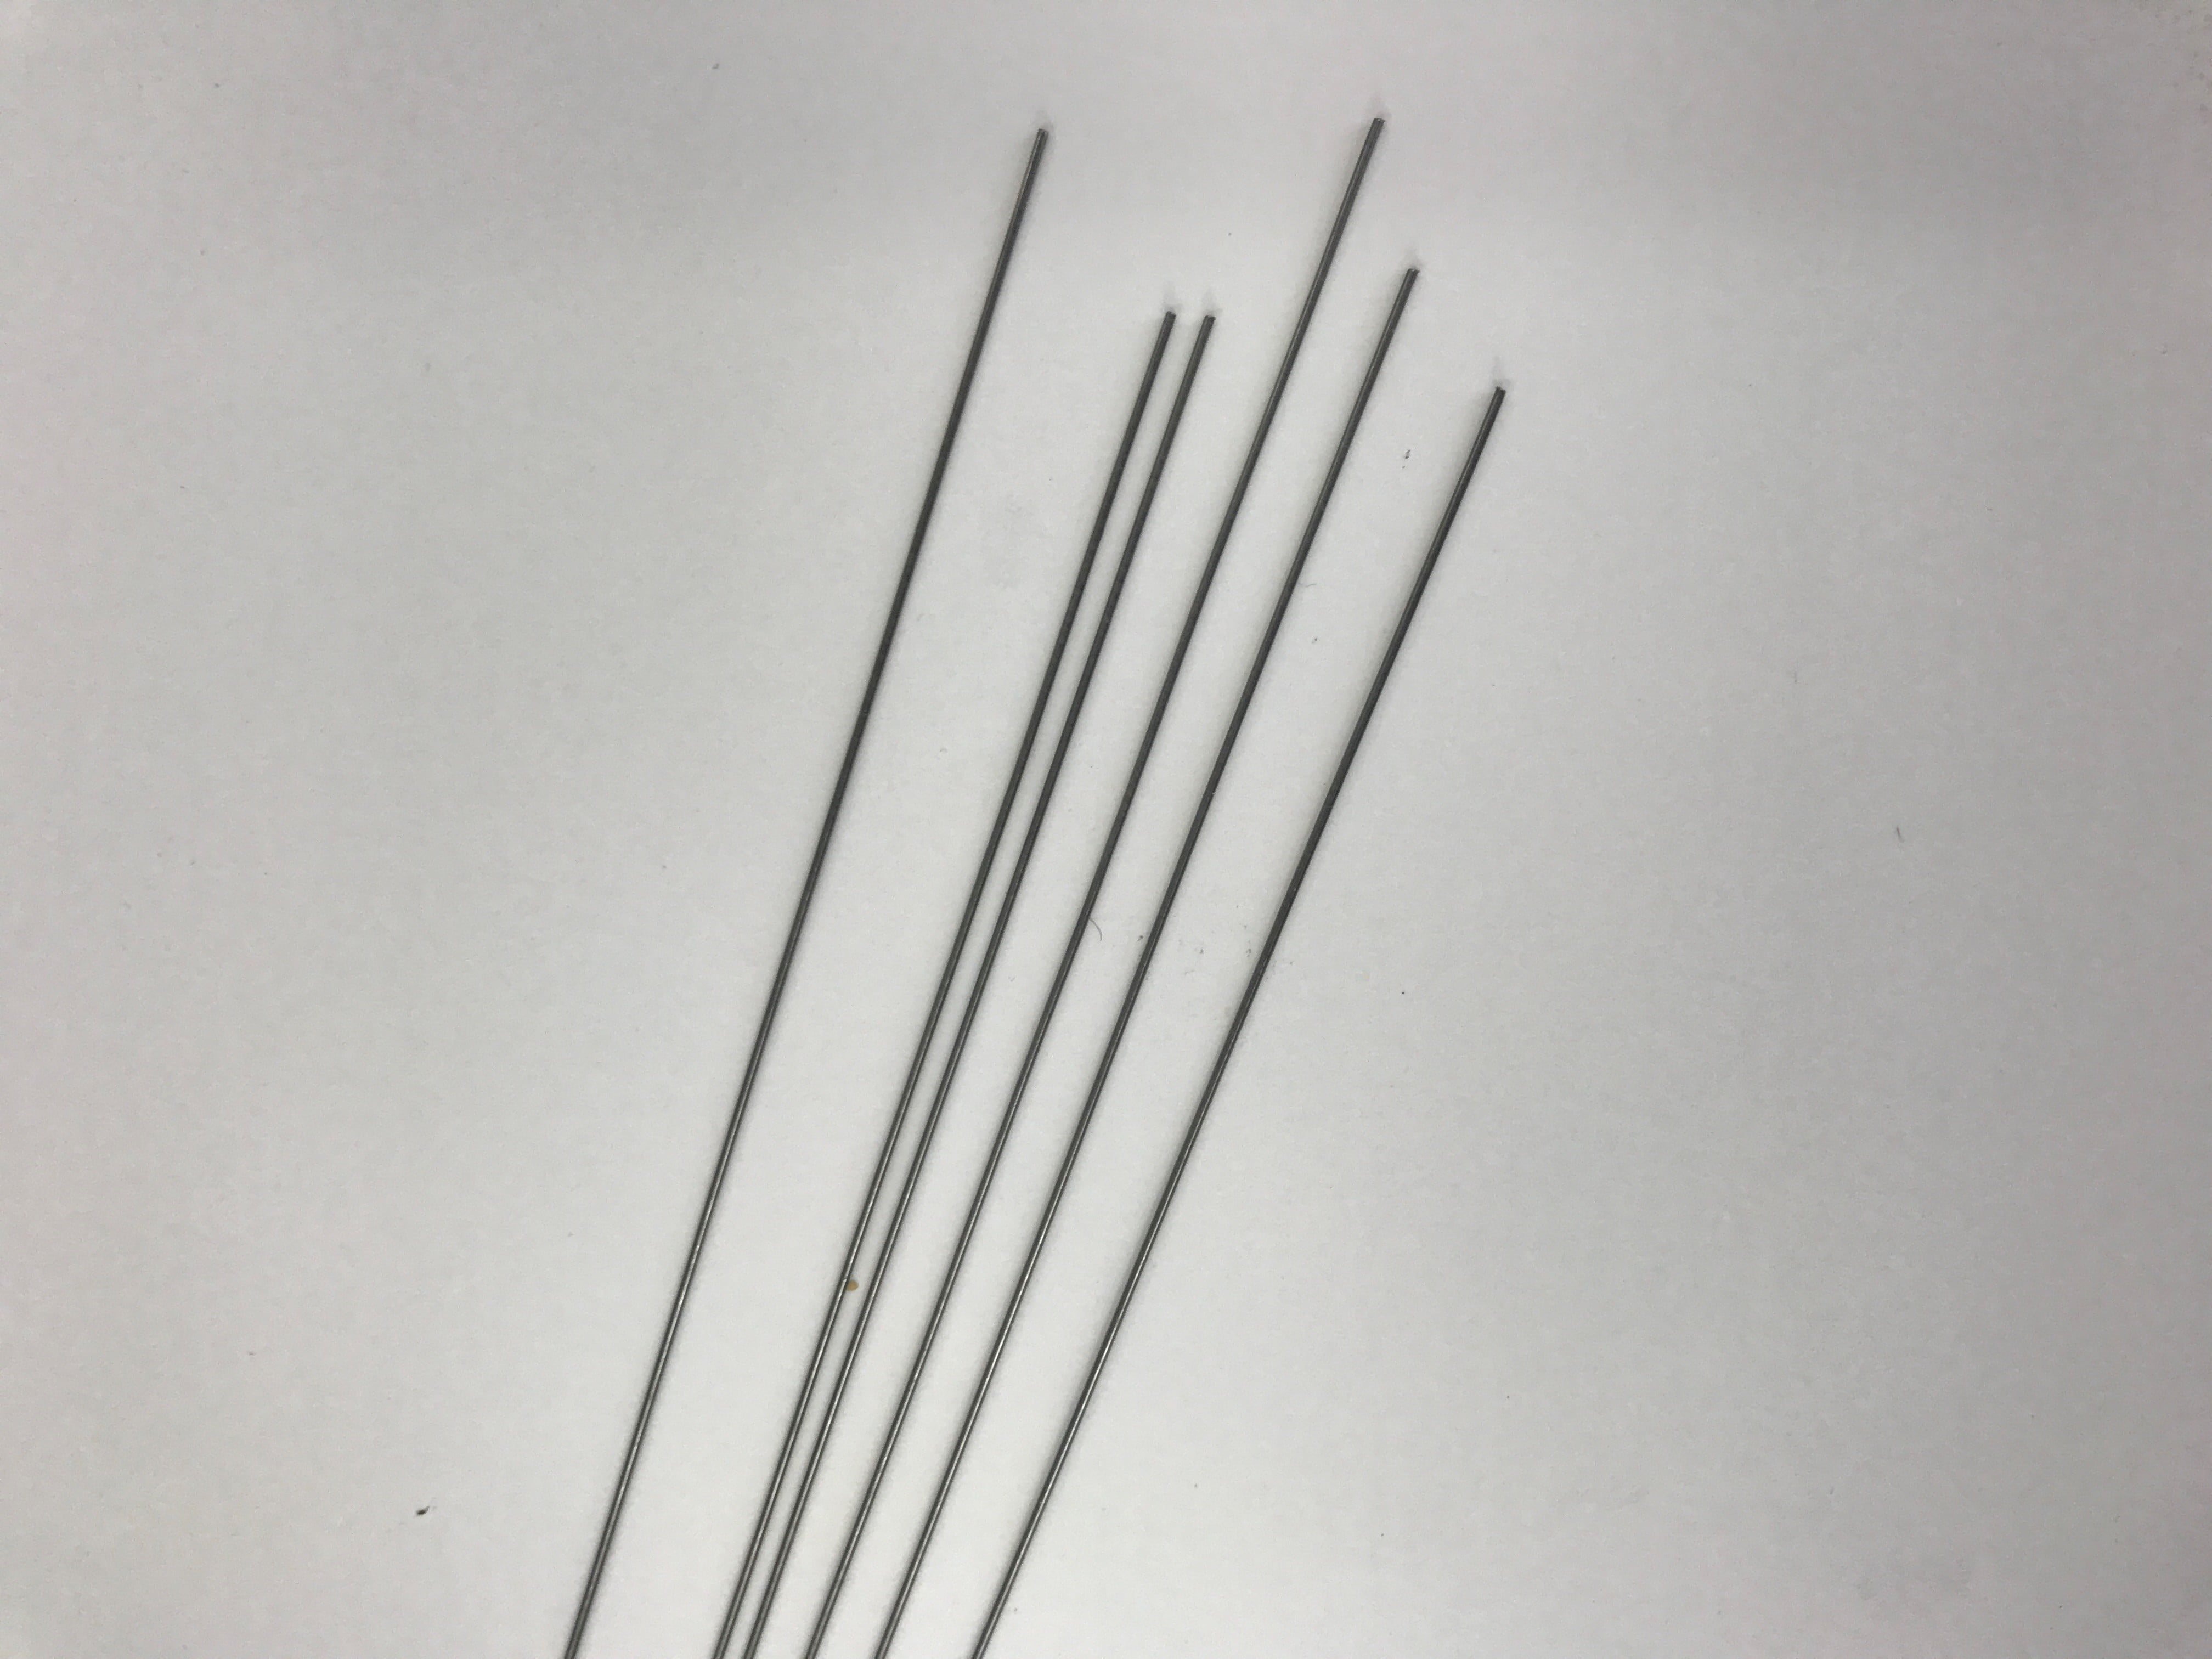 Piano Wire 0.8mm x 1000mm For Modelling | Hobbies